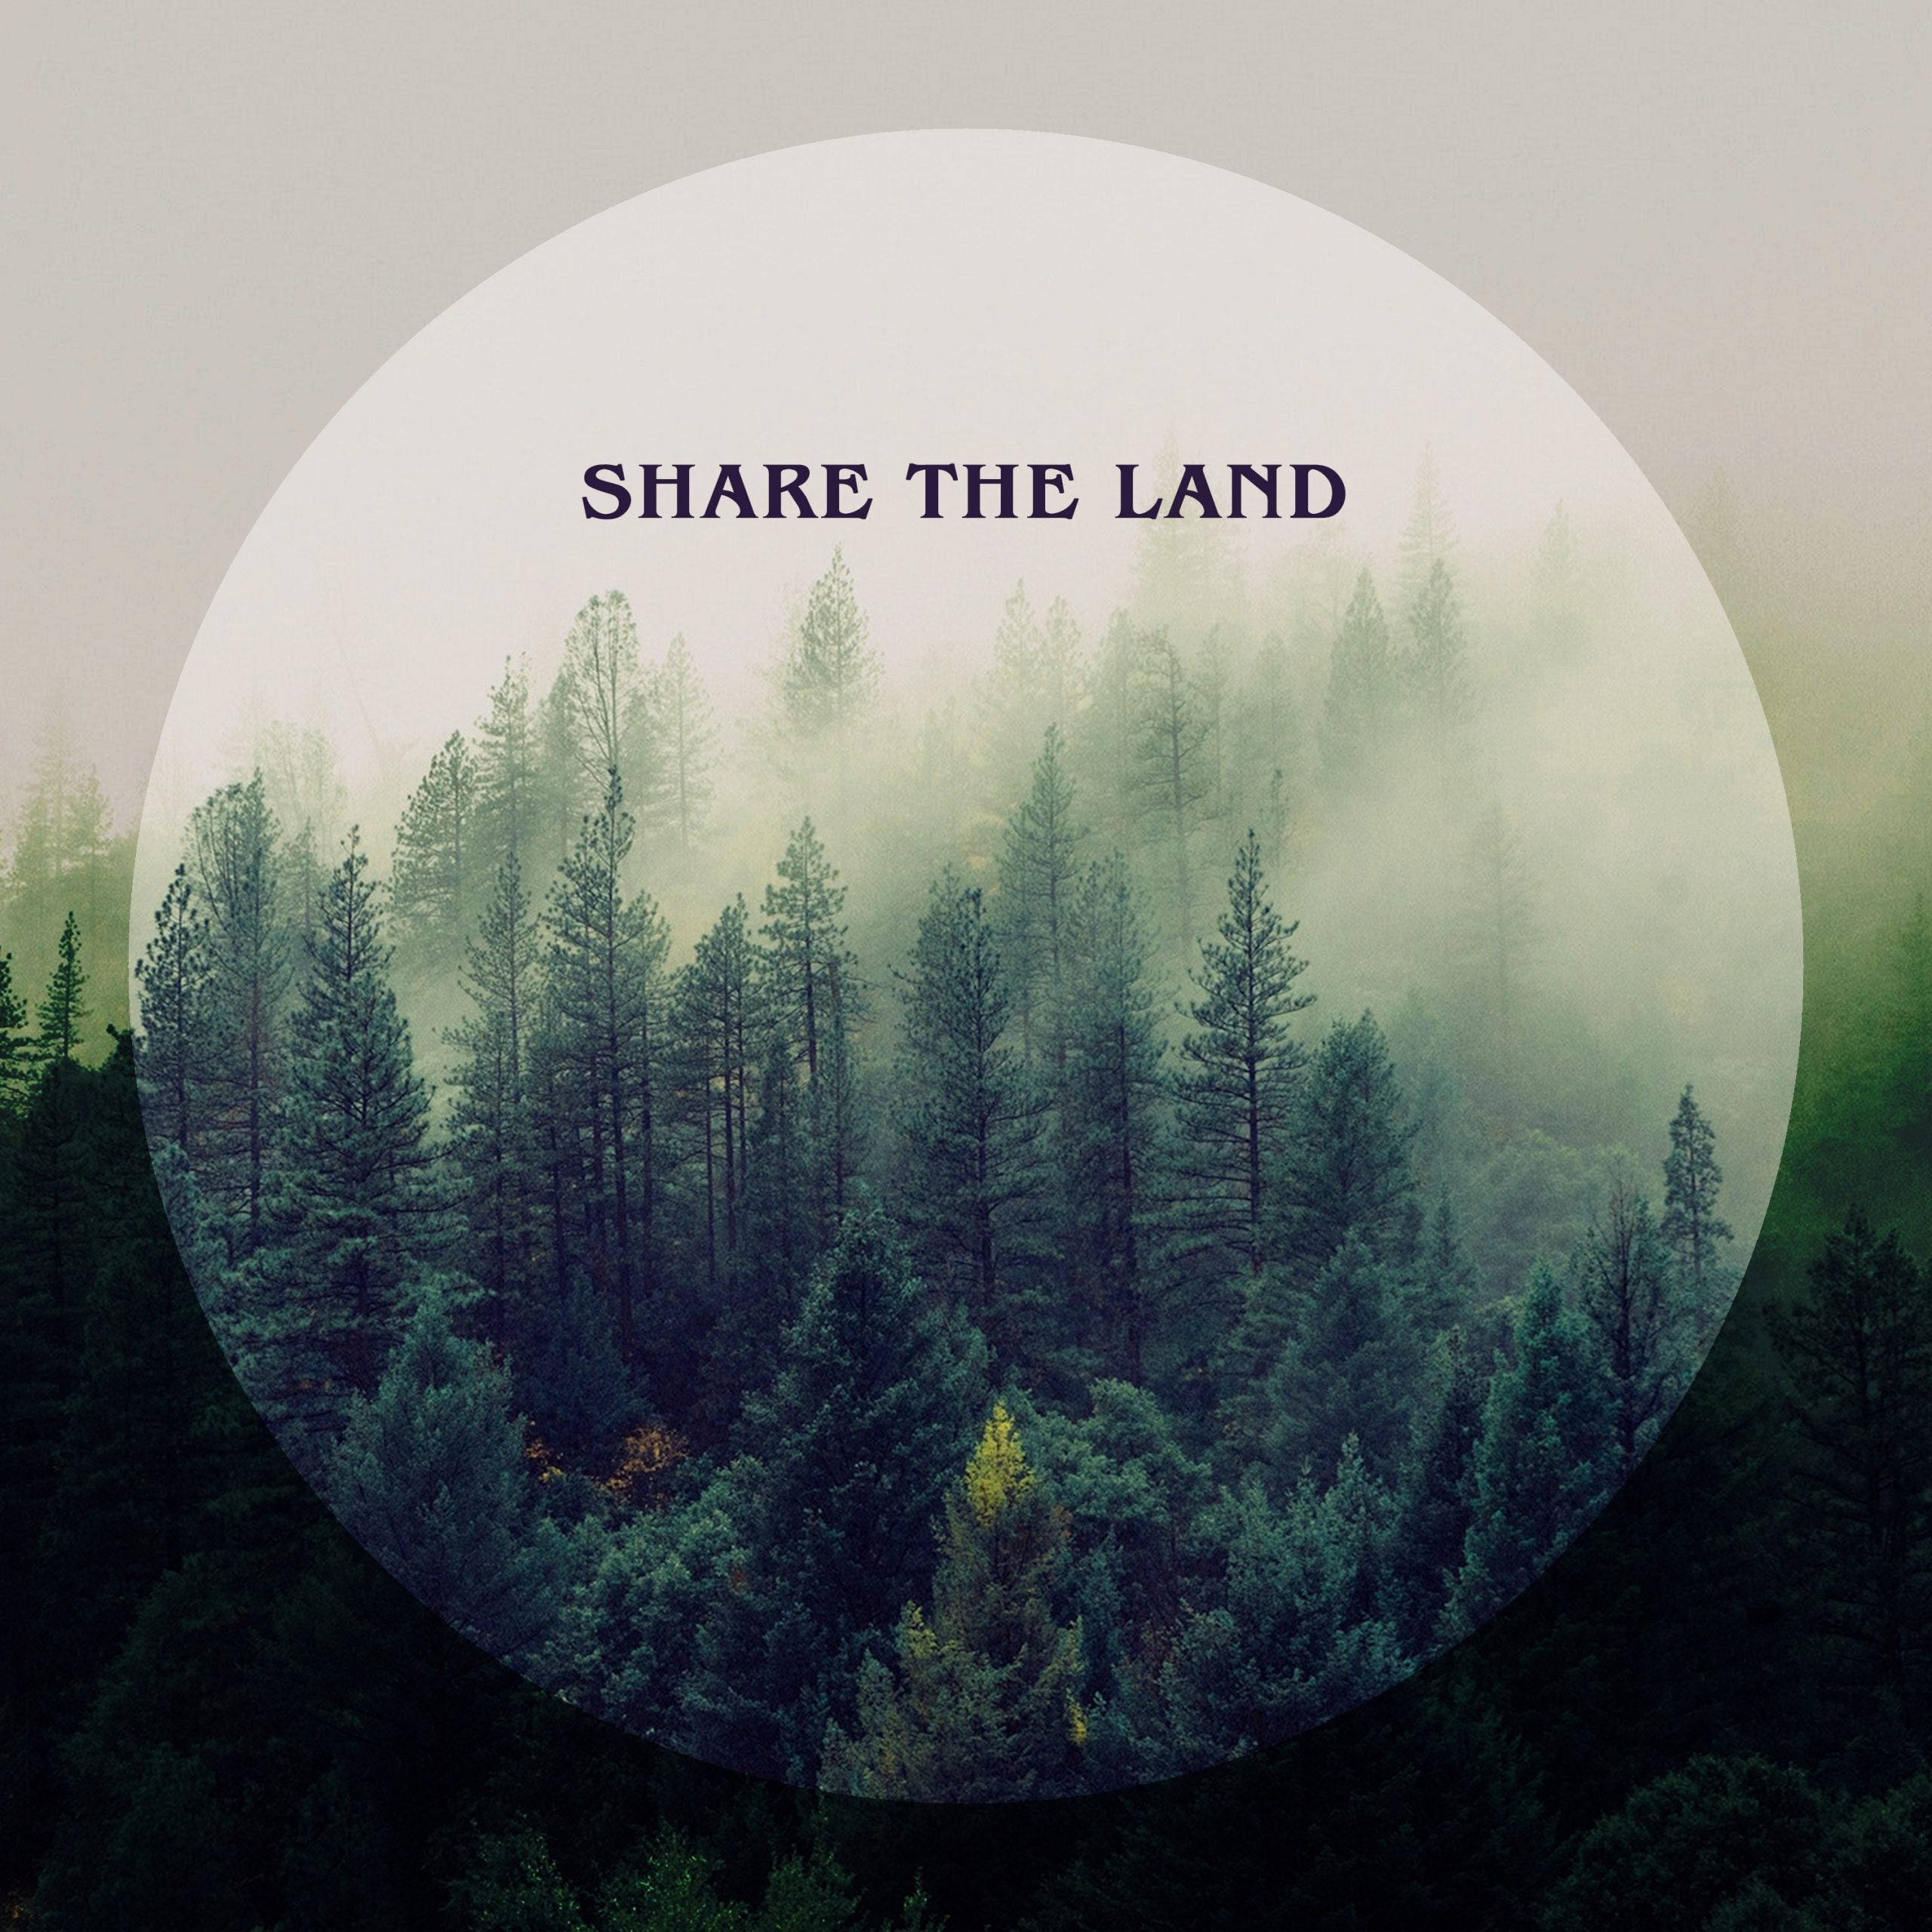 """The Guess Who - """"Share the Land"""" covered by The Blue Élan Family in their newest single."""